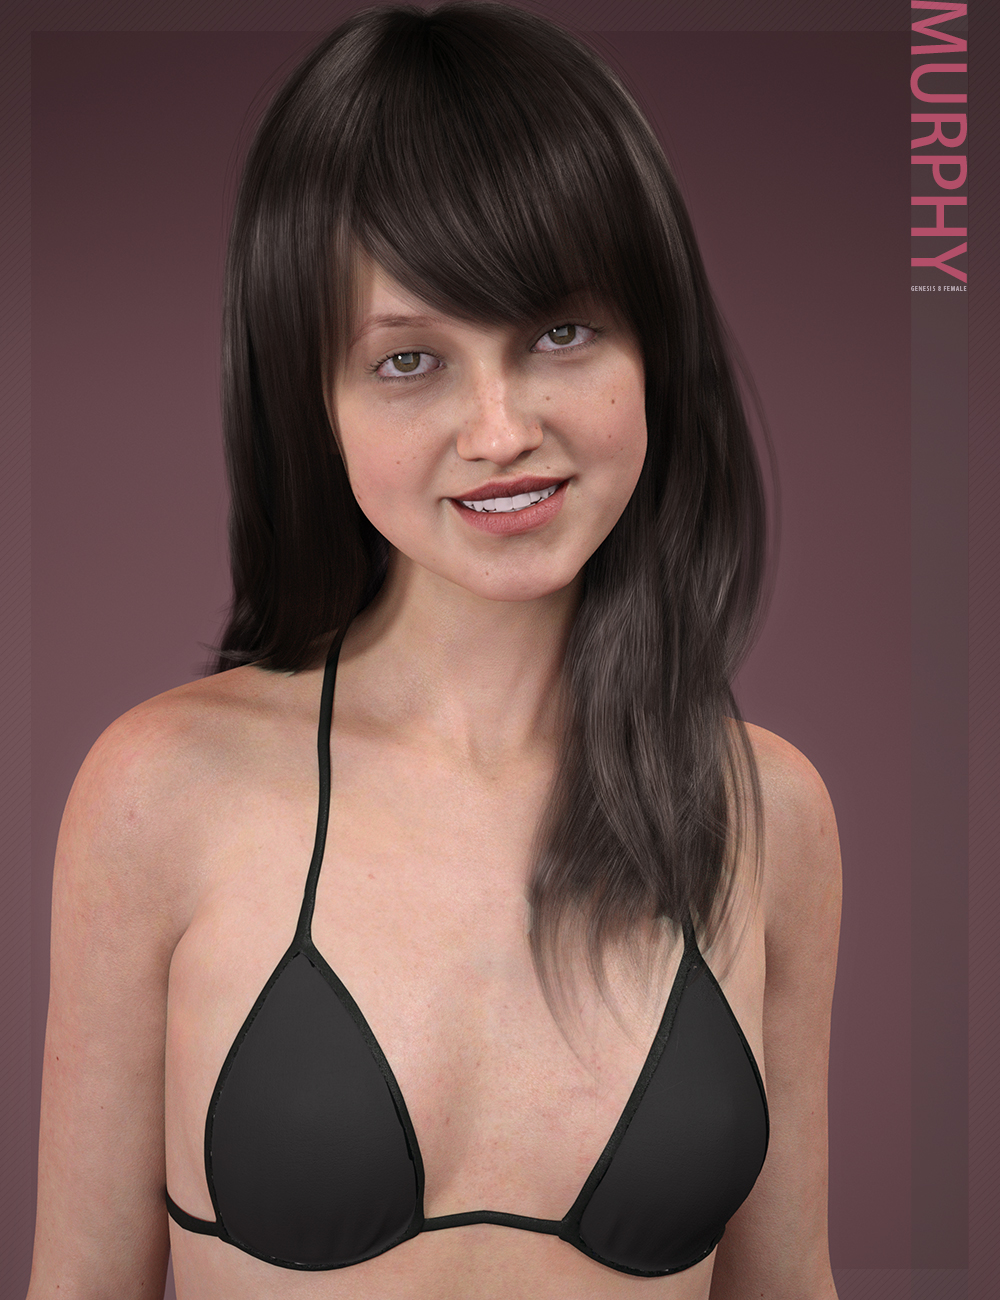 Murphy HD & Signature Smile HD Expression for Genesis 8 Female by: bluejaunte, 3D Models by Daz 3D